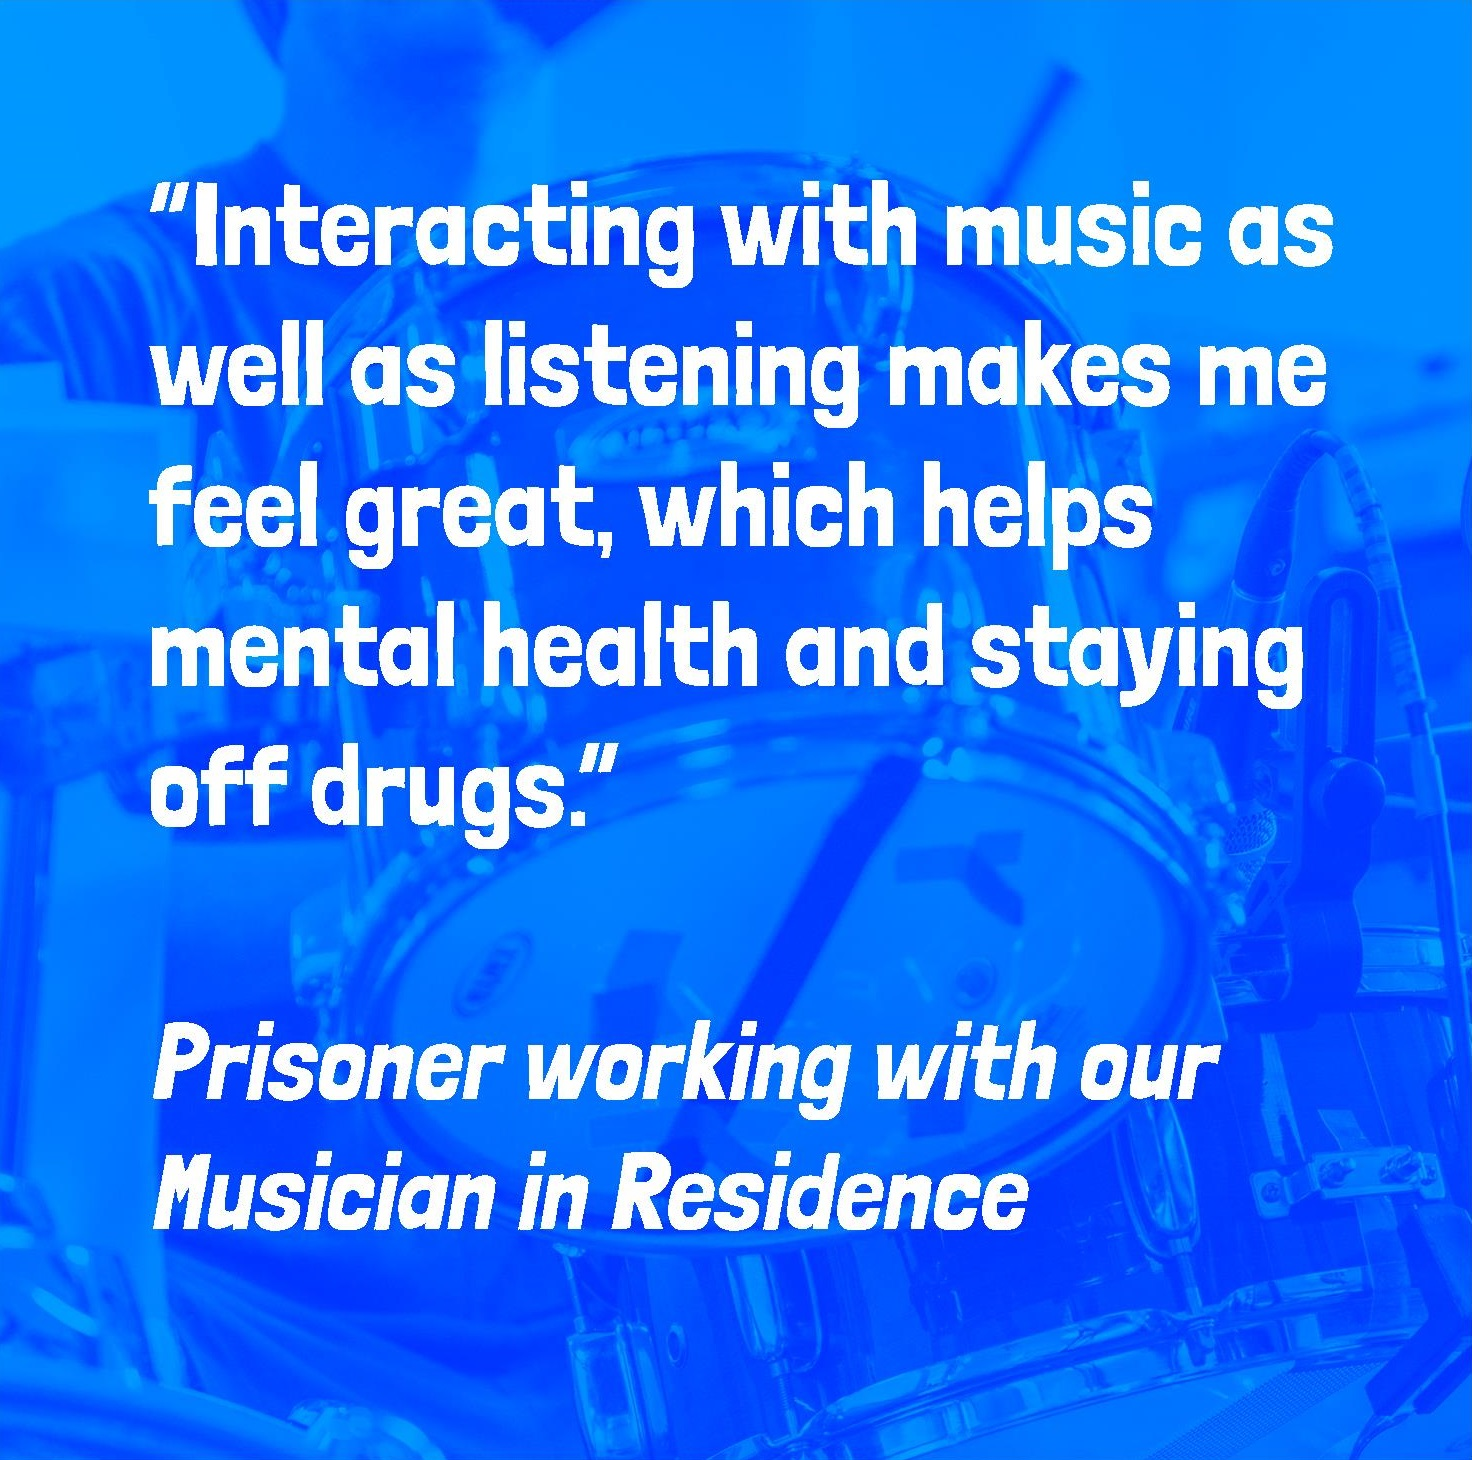 WMHD Interacting with music_staying offdrugs